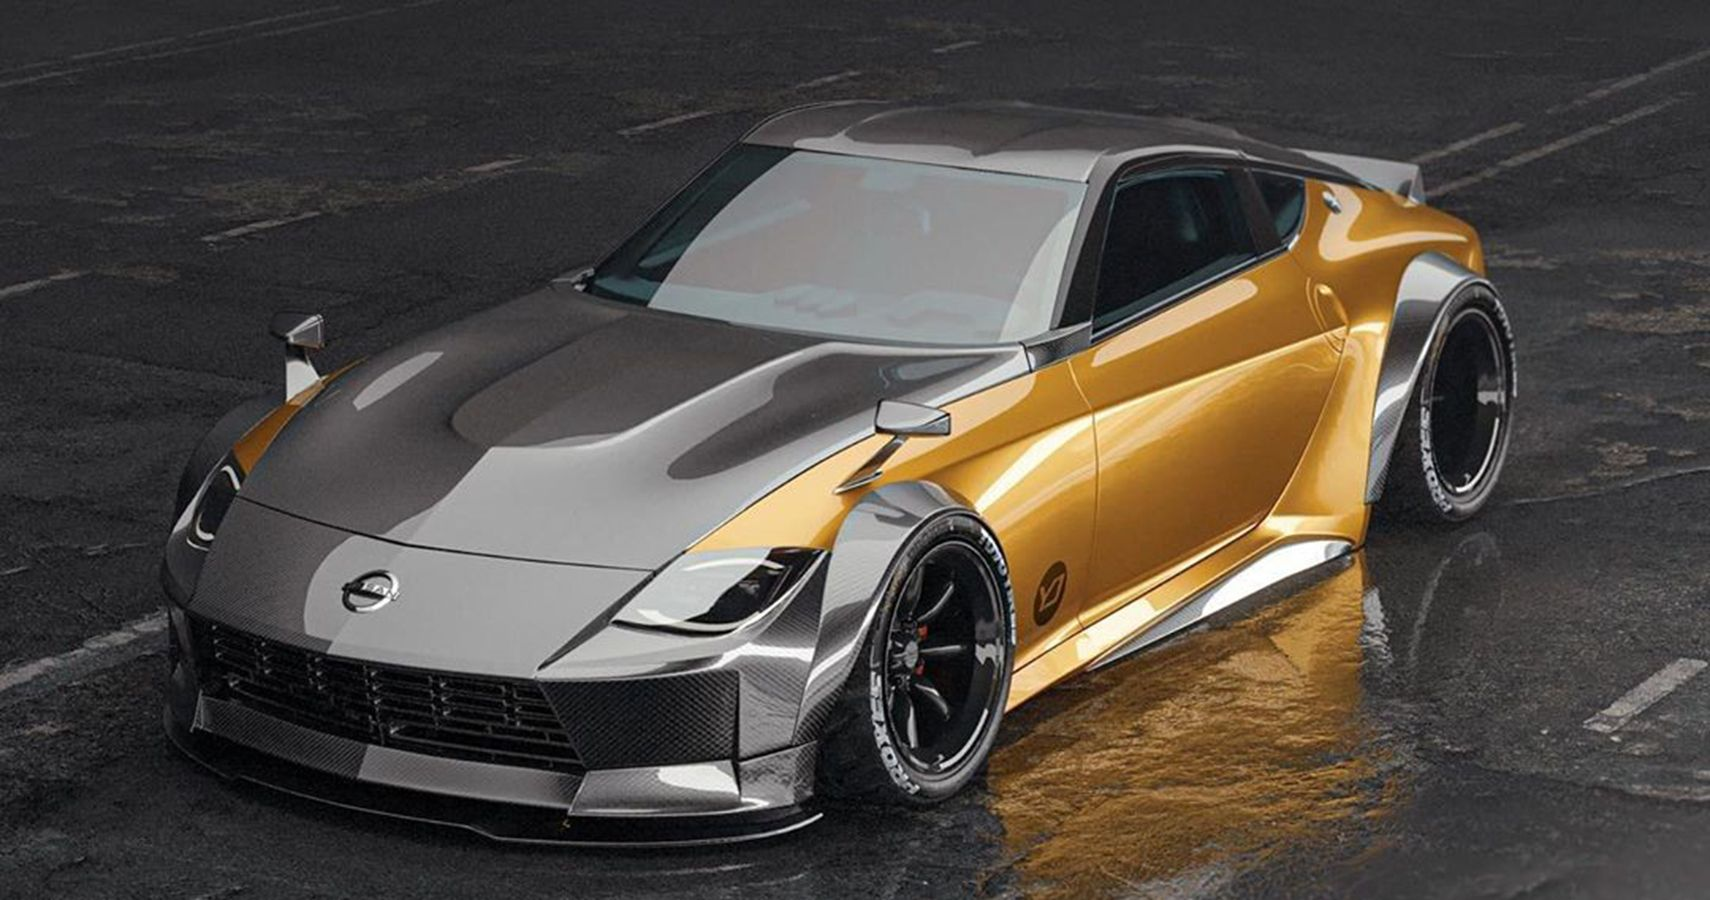 This Is What The Nissan Z Proto Should Look Like, According To Artist's Renderings